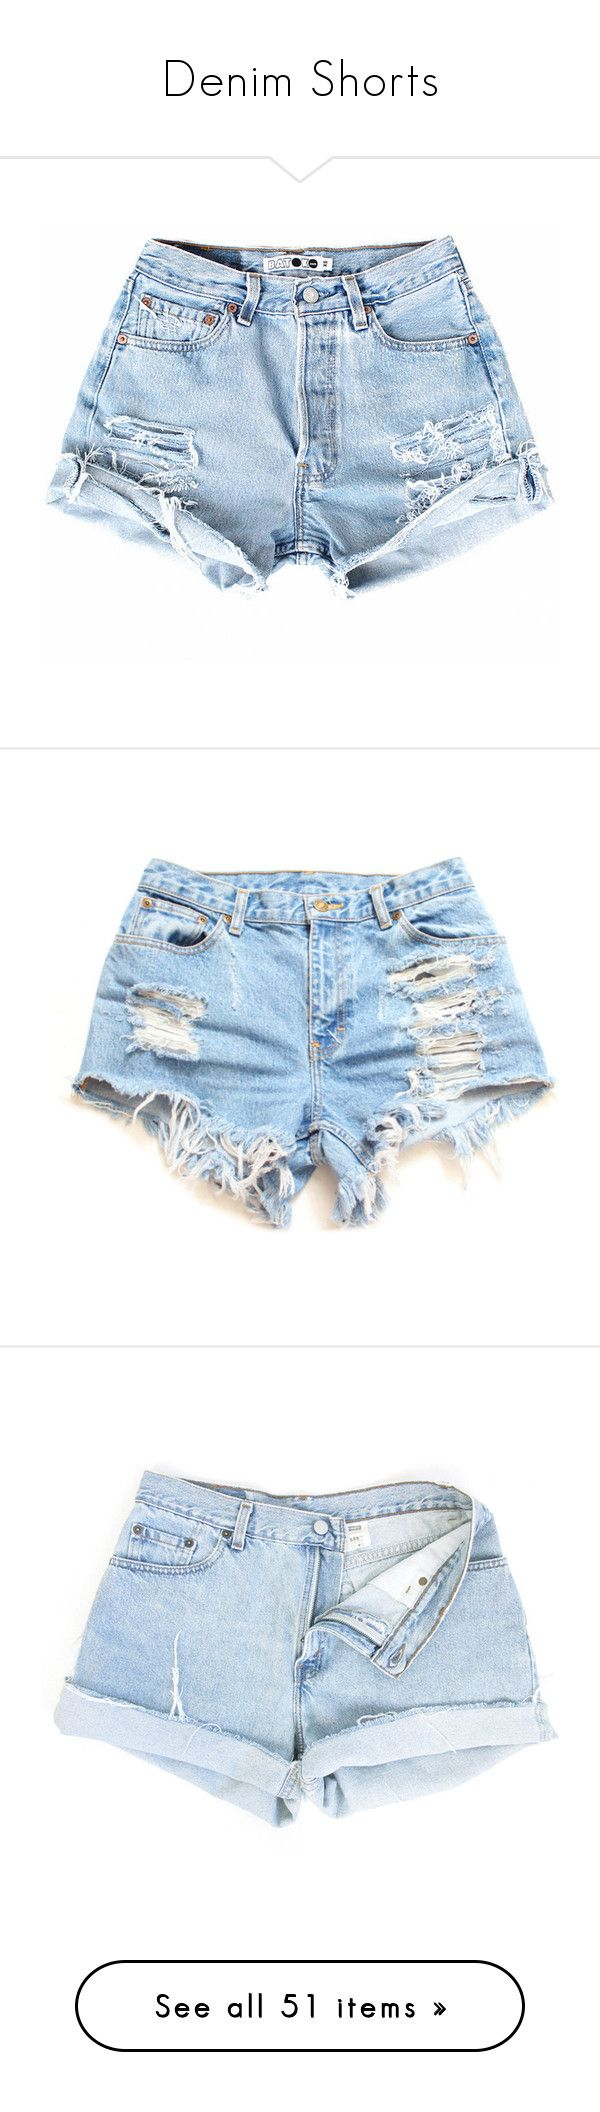 """Denim Shorts"" by oh-aurora ❤ liked on Polyvore featuring shorts, bottoms, short, pants, high waisted shorts, short shorts, distressed jean shorts, denim short shorts, high-waisted shorts and plus size denim shorts"